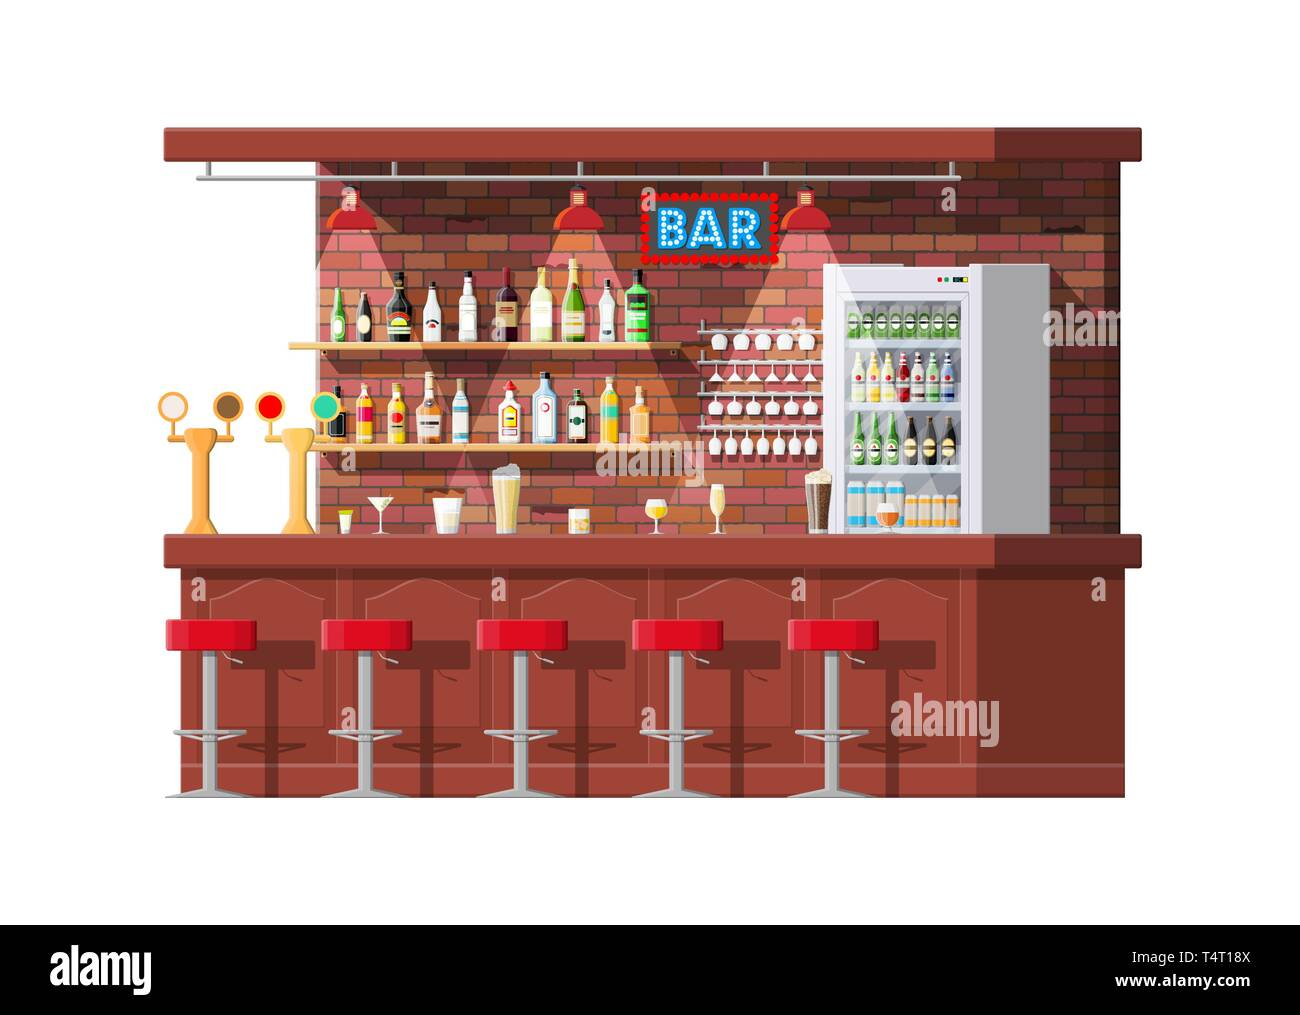 Drinking establishment. Interior of pub, cafe or bar. Bar counter, chairs and shelves with alcohol bottles, refrigerator. Glasses and lamp. Wooden dec Stock Vector